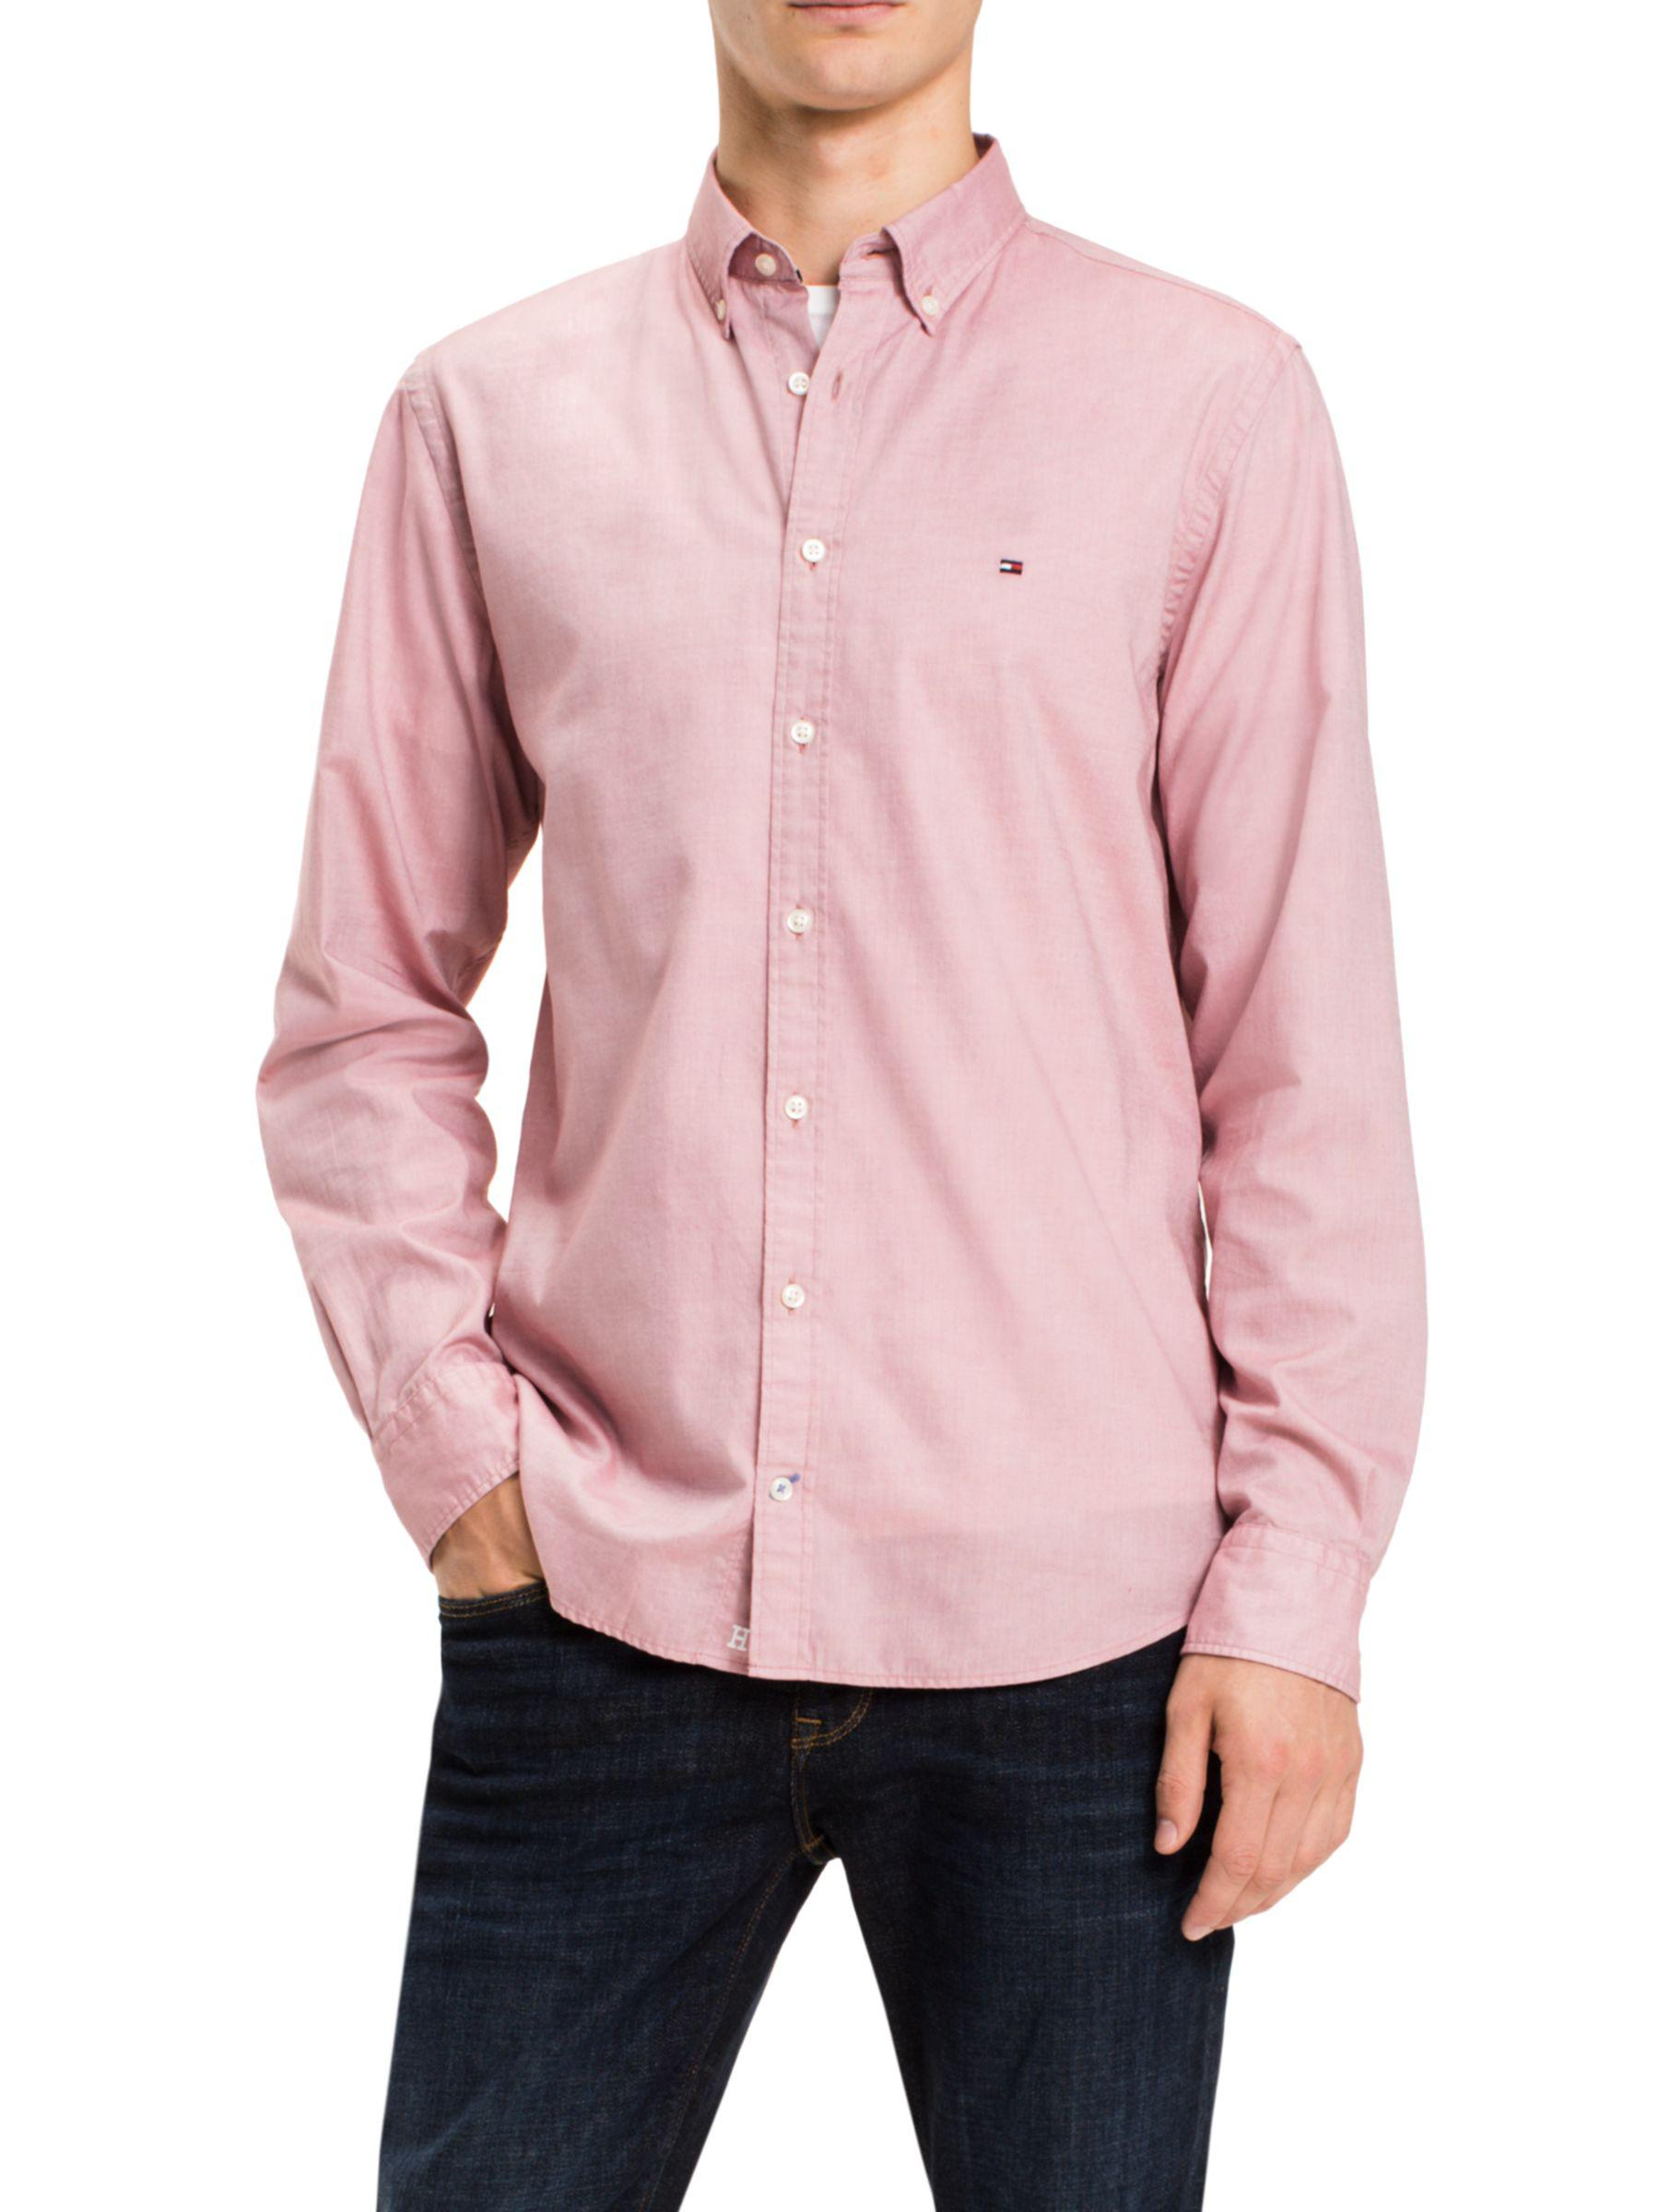 2651b9ea Tommy Hilfiger Two Tone Dobby Shirt in Pink for Men - Lyst